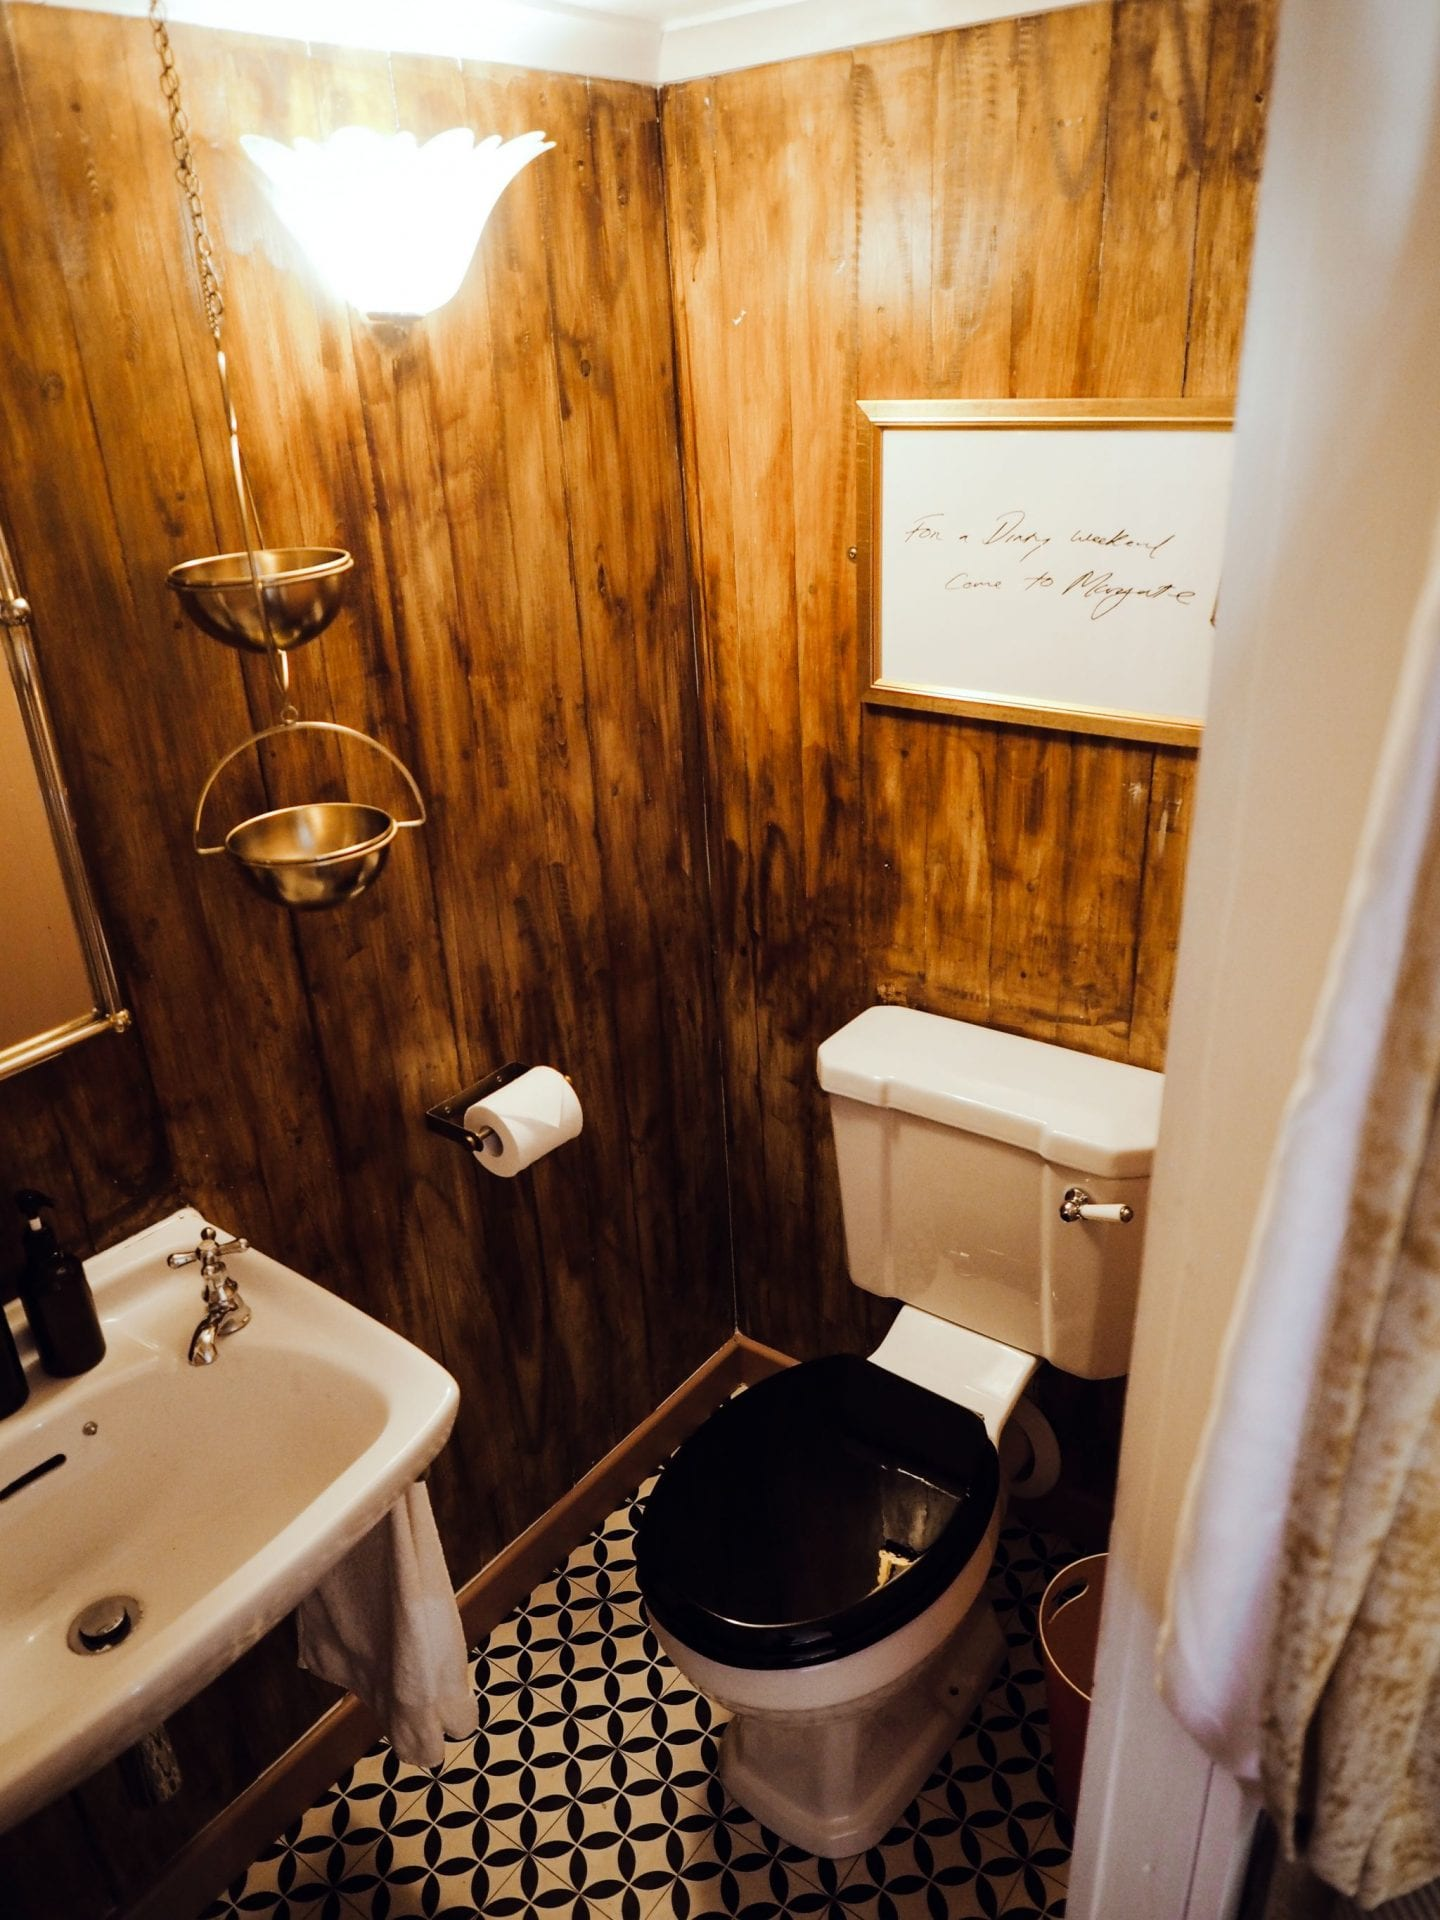 george-and-heart-margate-kent-wood-cabin-bathroom--scaled